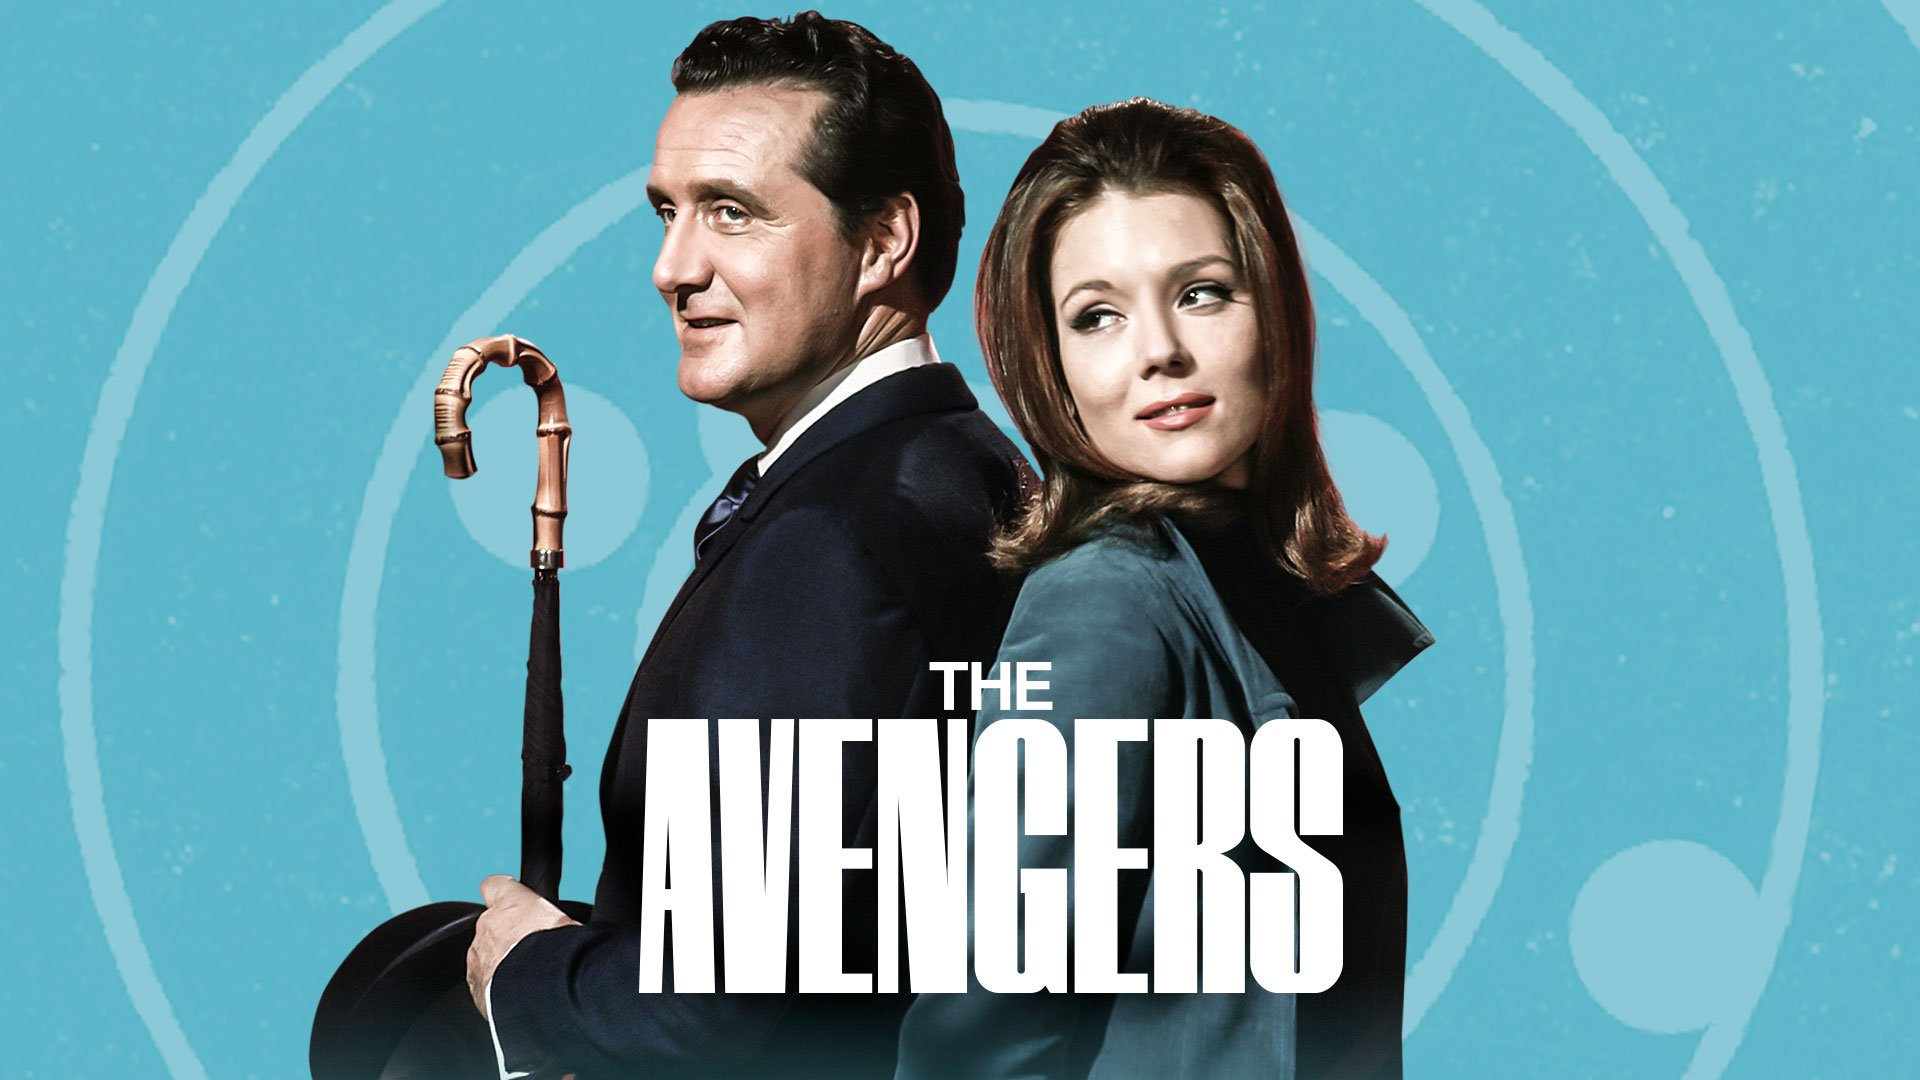 The Avengers on BritBox UK